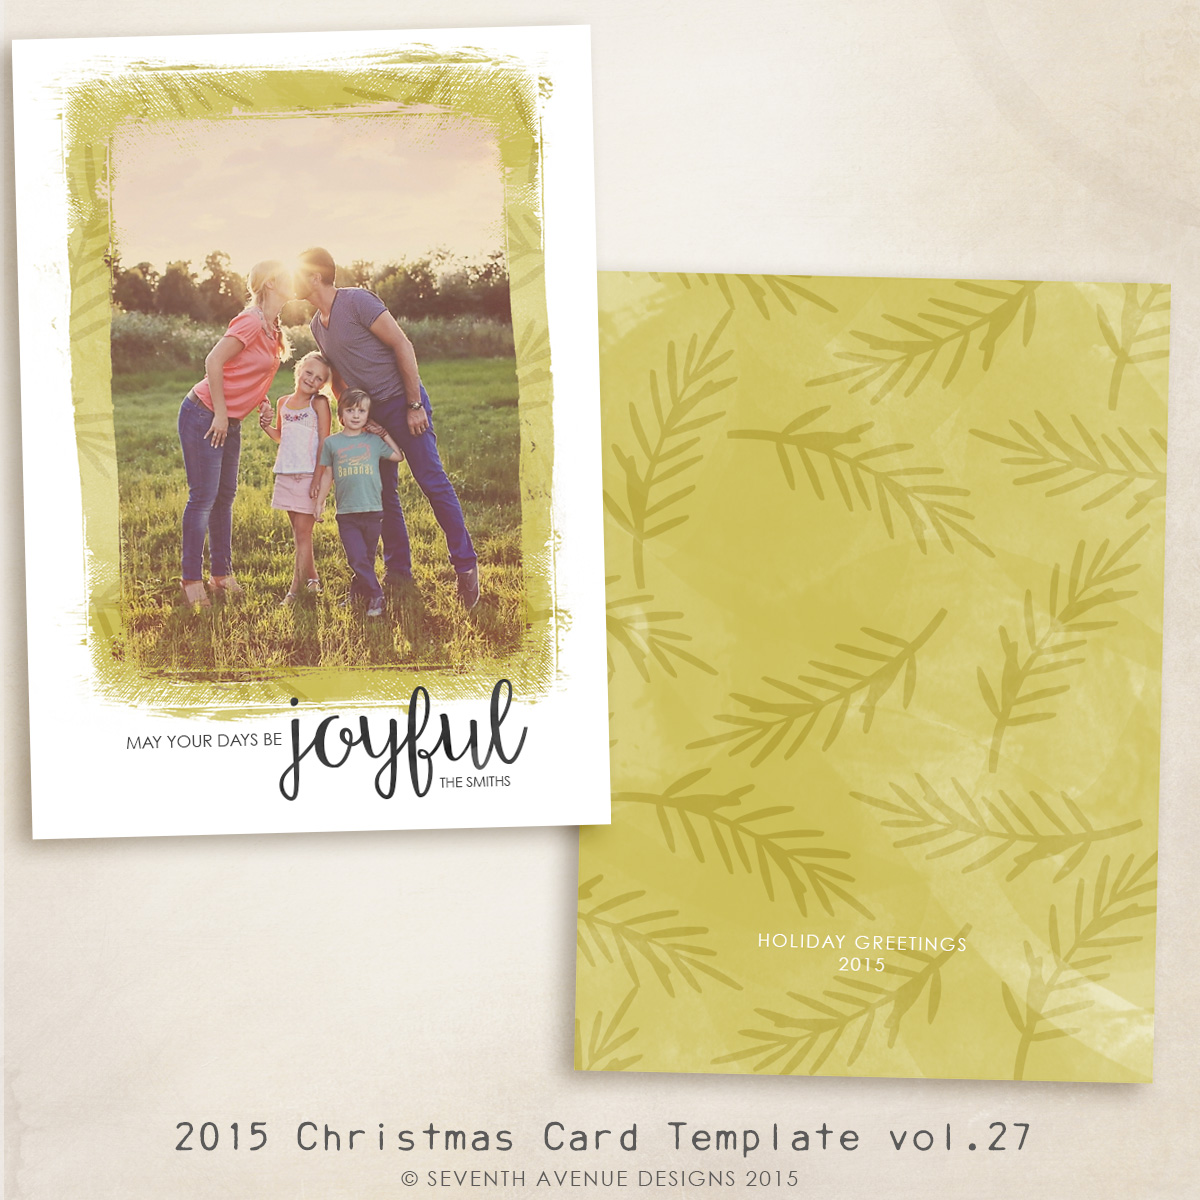 2015 Christmas Card Templates vol.27 -- 7x5 inch card template